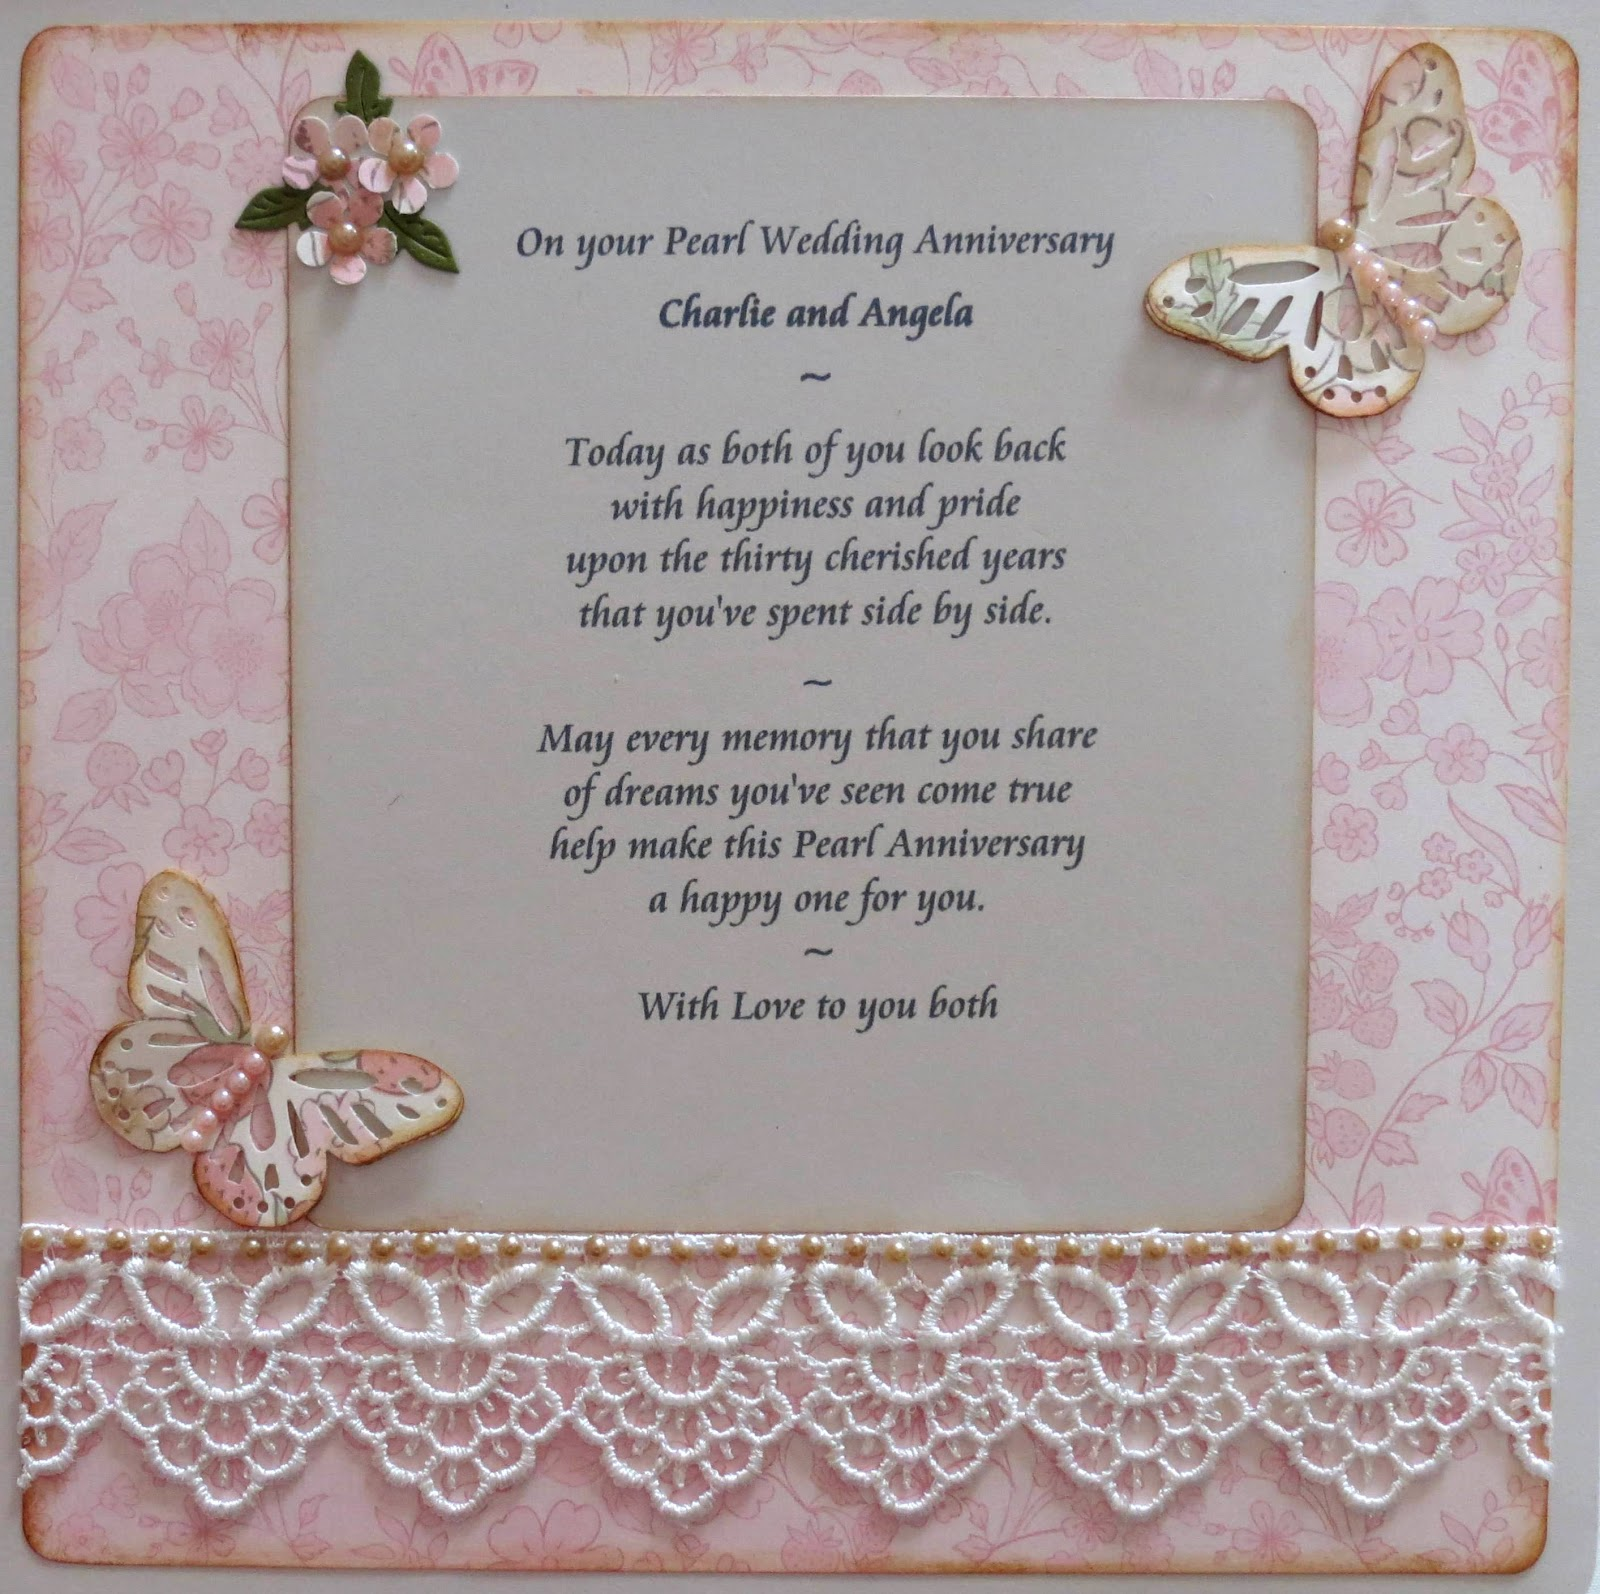 Pearl wedding anniversary cards for parents